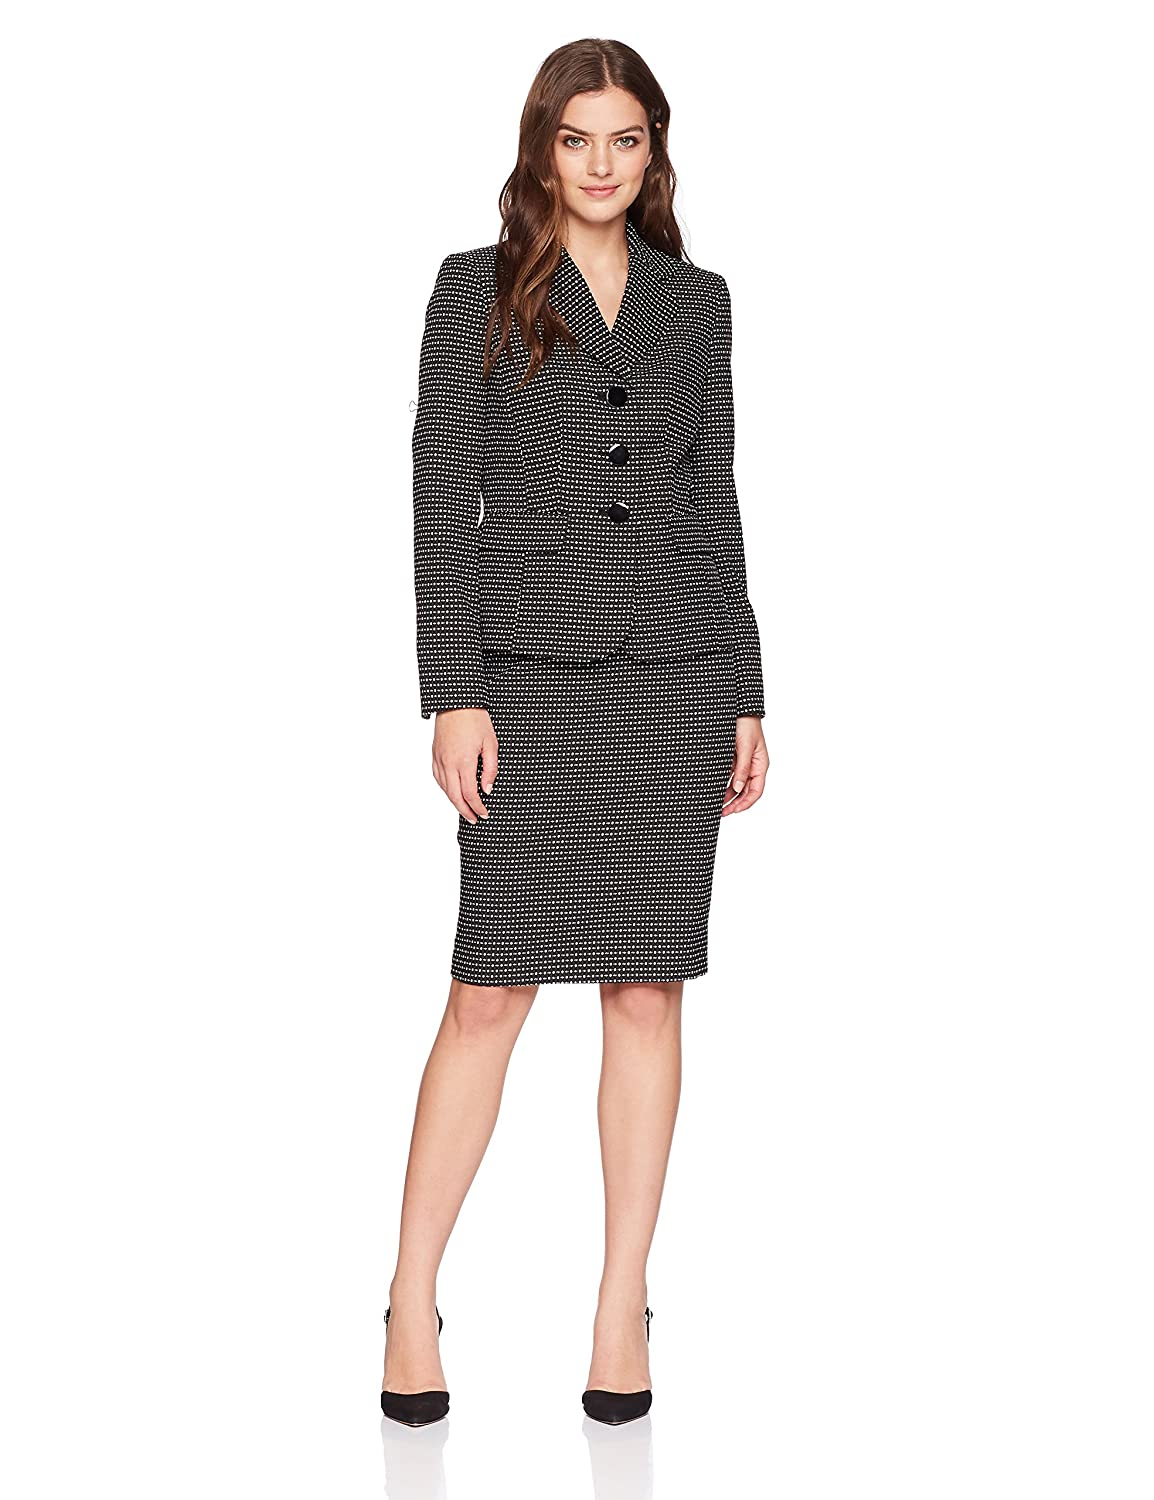 LeSuit Womens Standard Novelty Dot 3 Bttn Notch Lapel Skirt Suit Le Suit 50036843